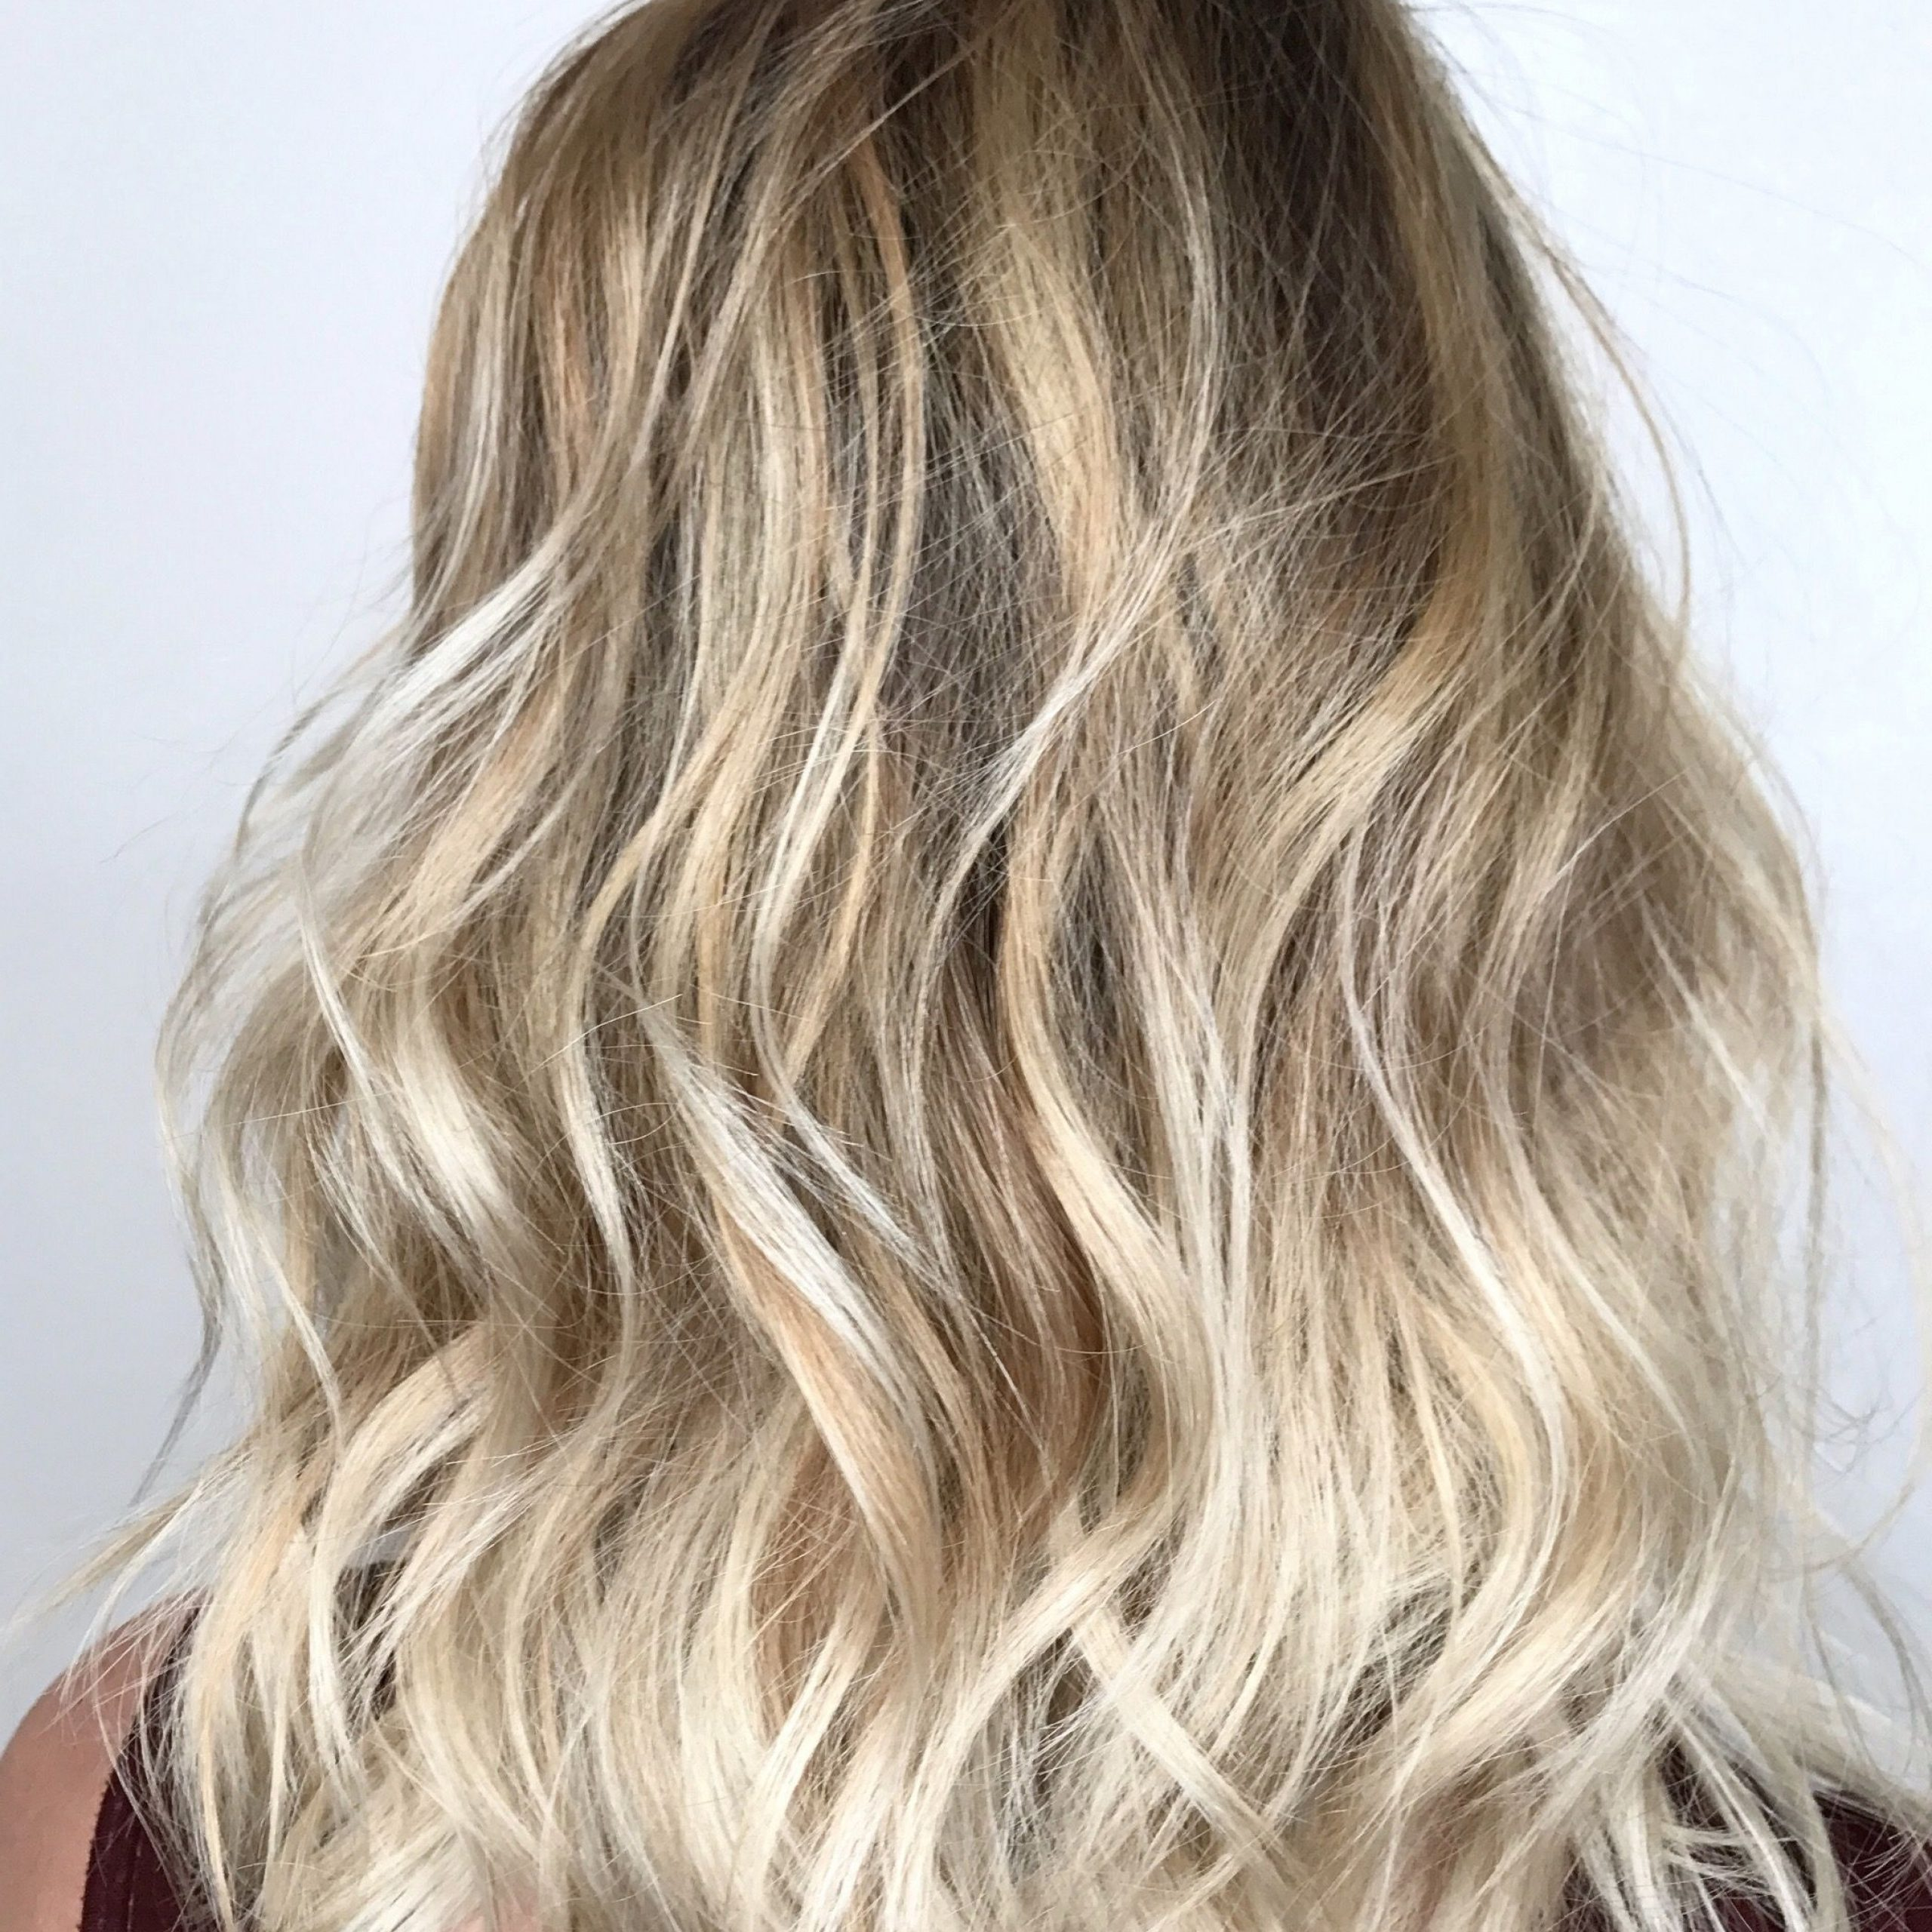 Dimensional Blonde Balayage ️ | Hair Styles, Blonde Regarding Layered Dimensional Hairstyles (View 7 of 20)